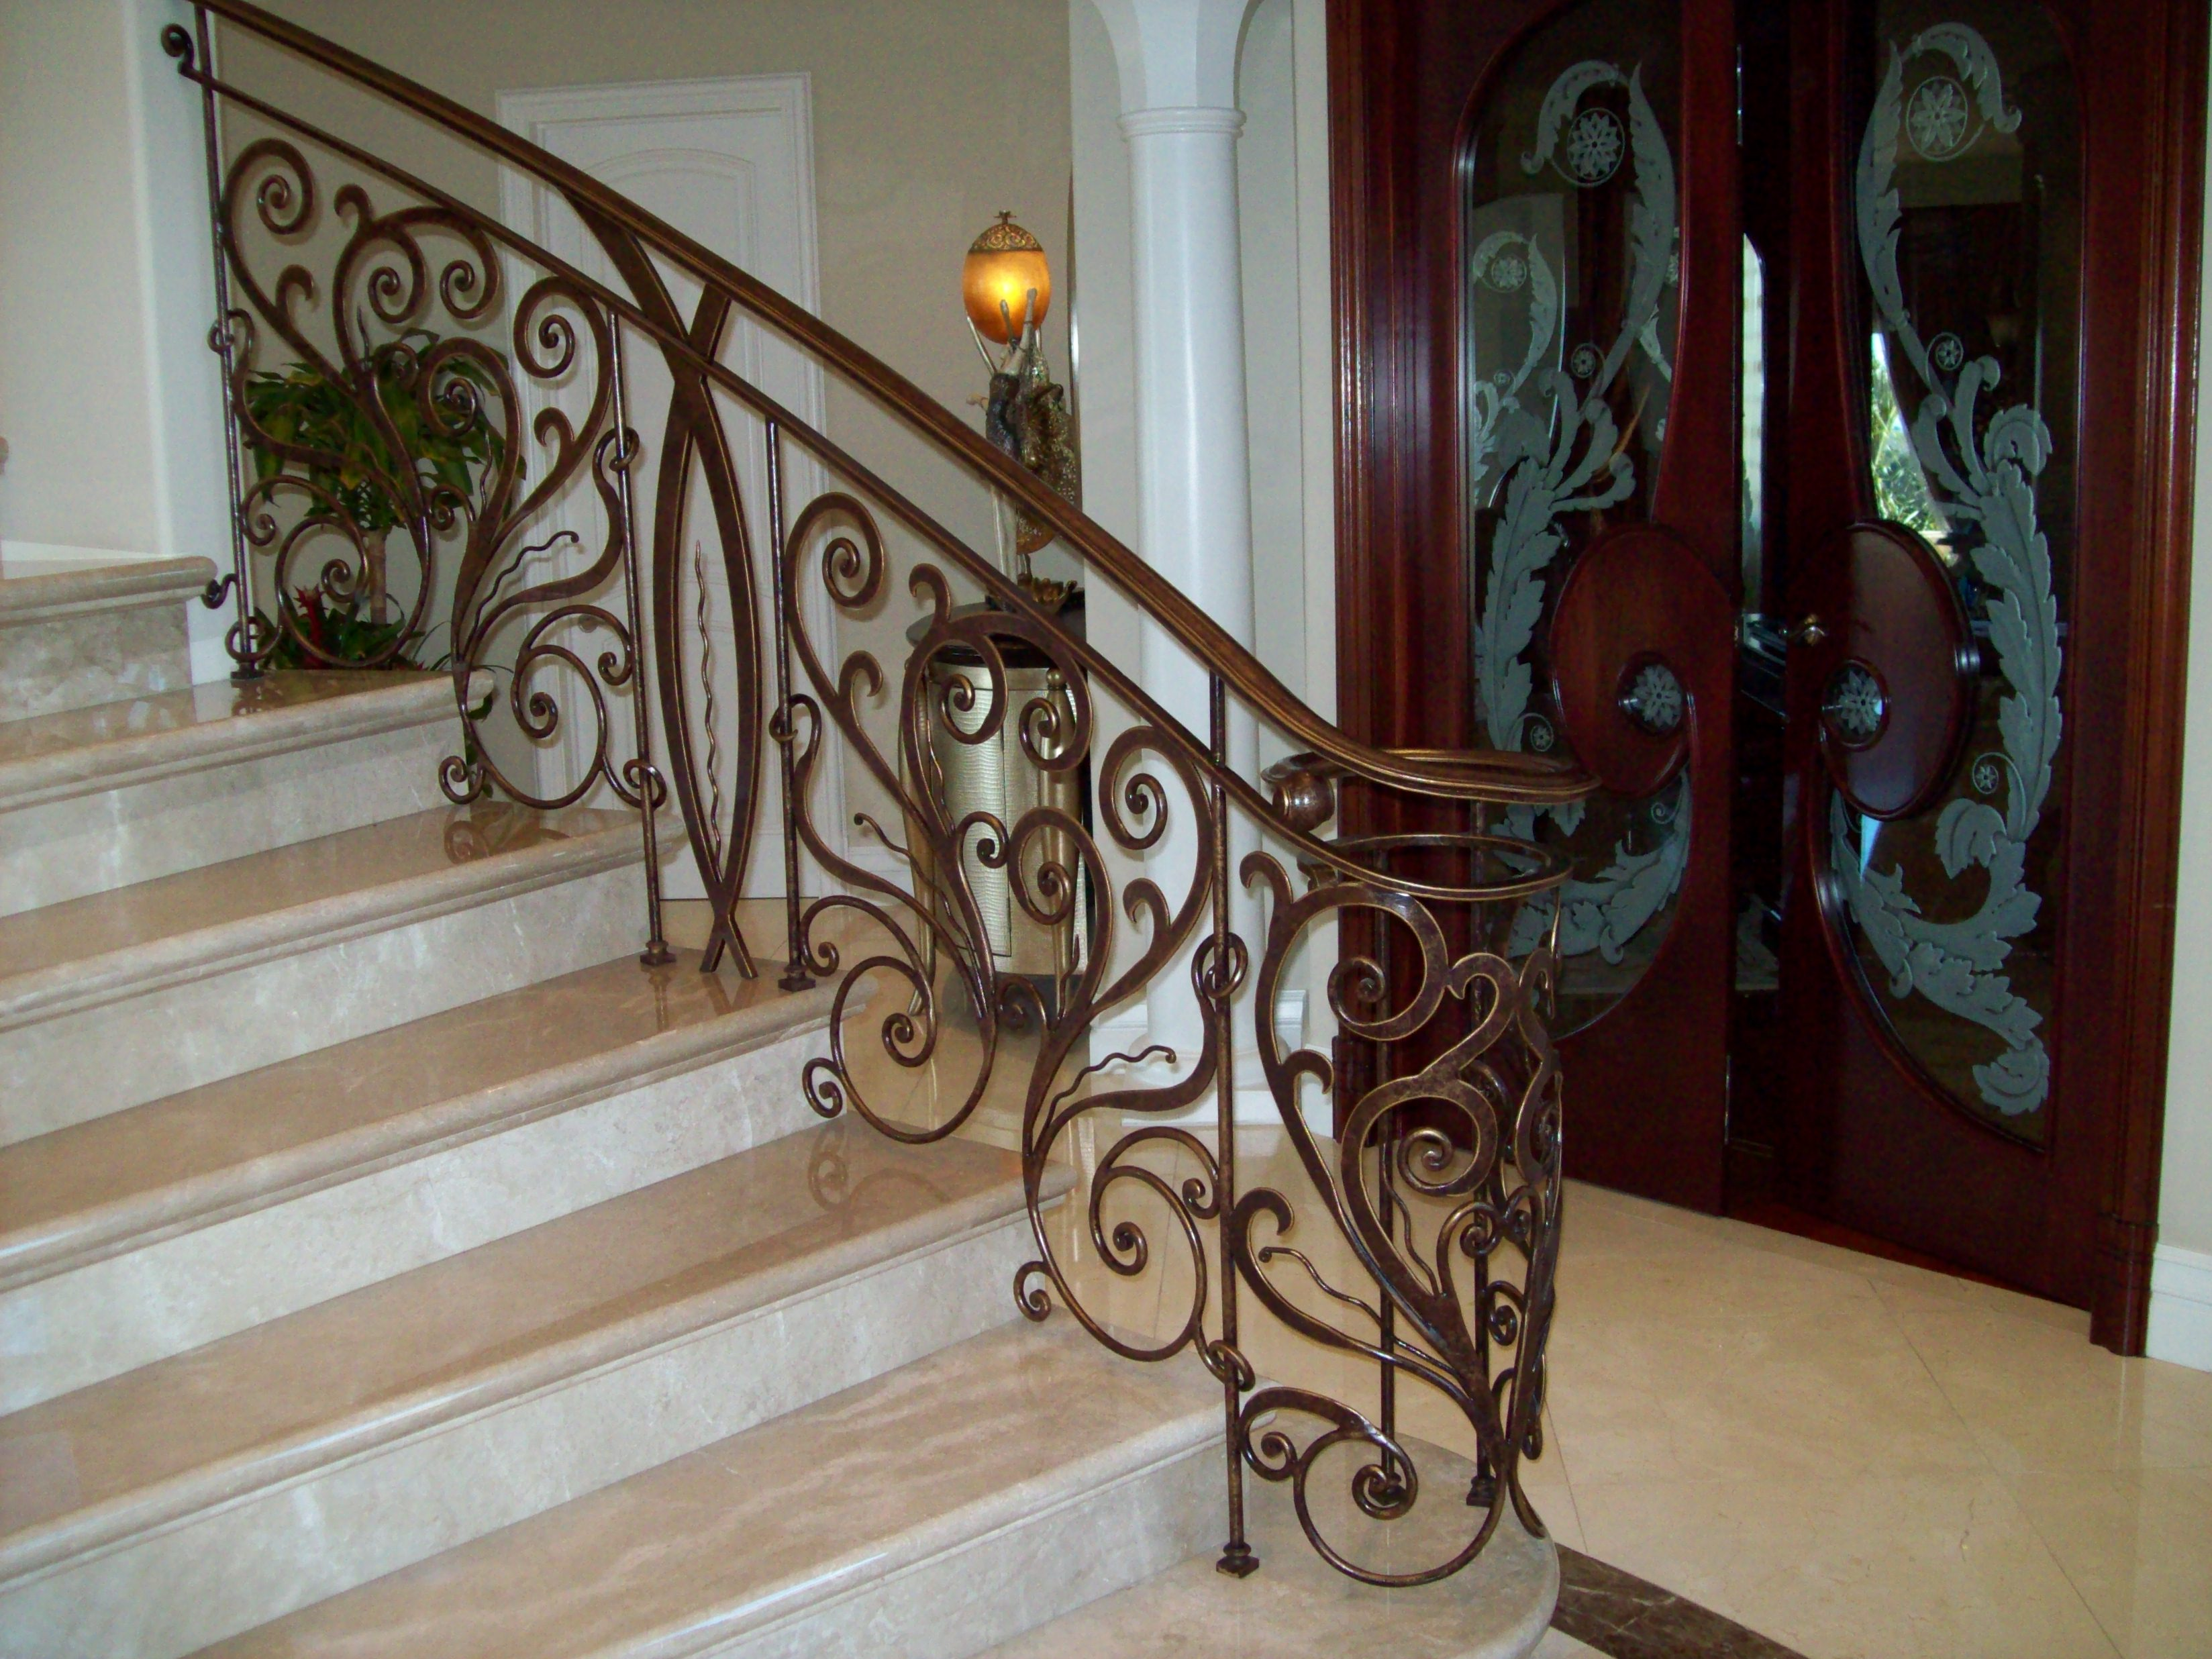 Interior ornamental iron work v m iron works inc in for Interior iron railing designs